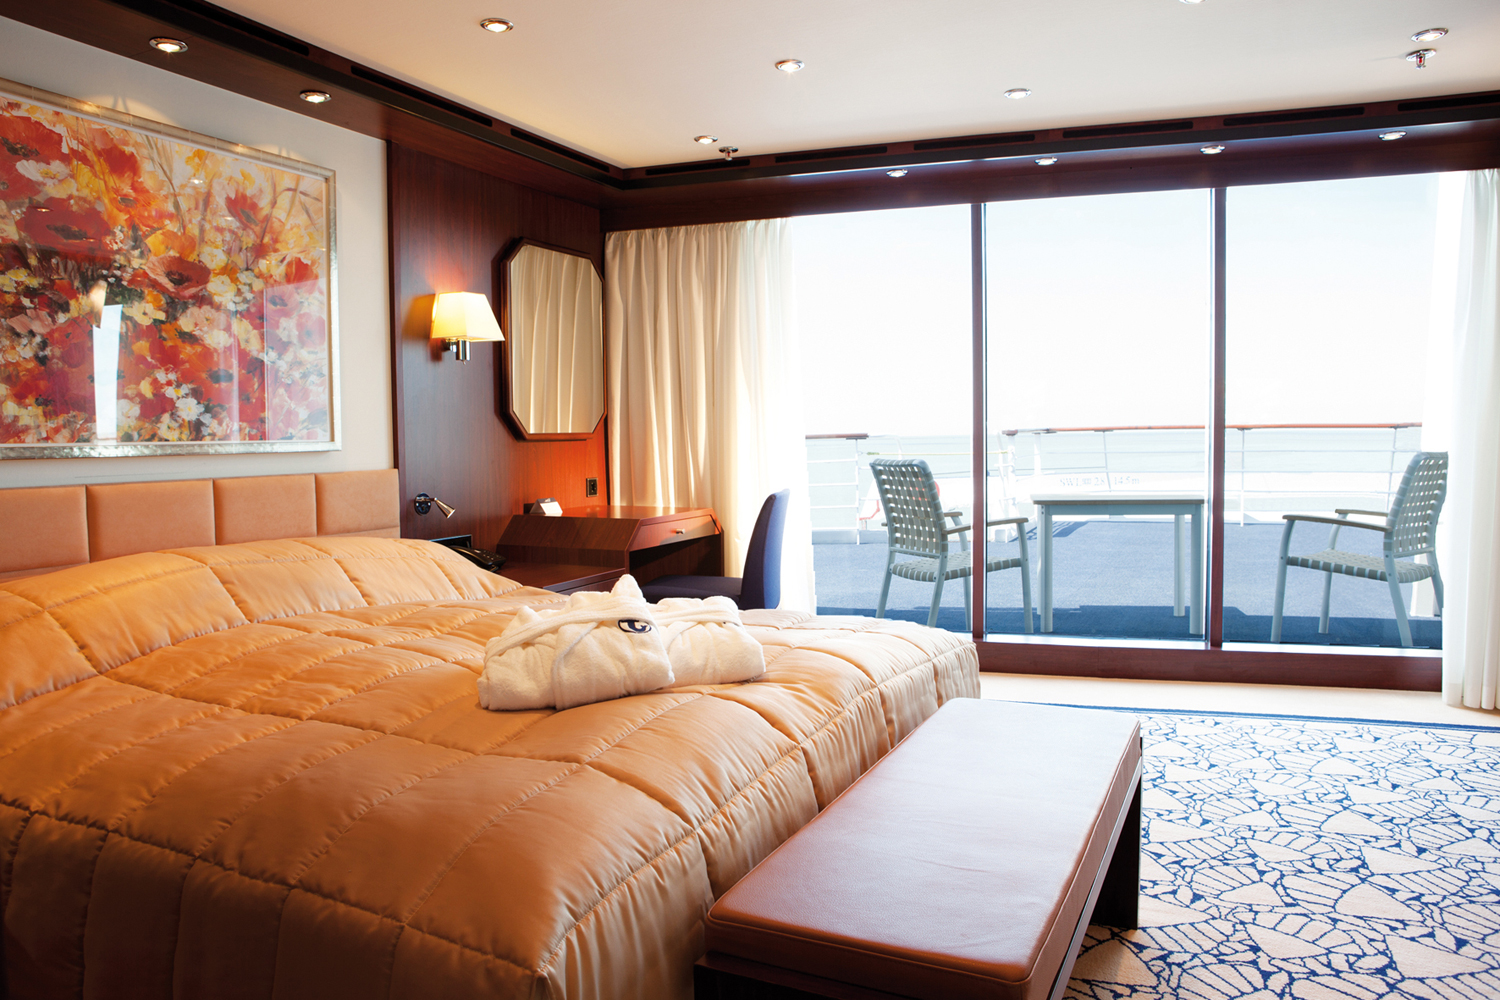 Cruise & Maritime Voyages Astor Accommodation Astor Suite Bedroom.jpg